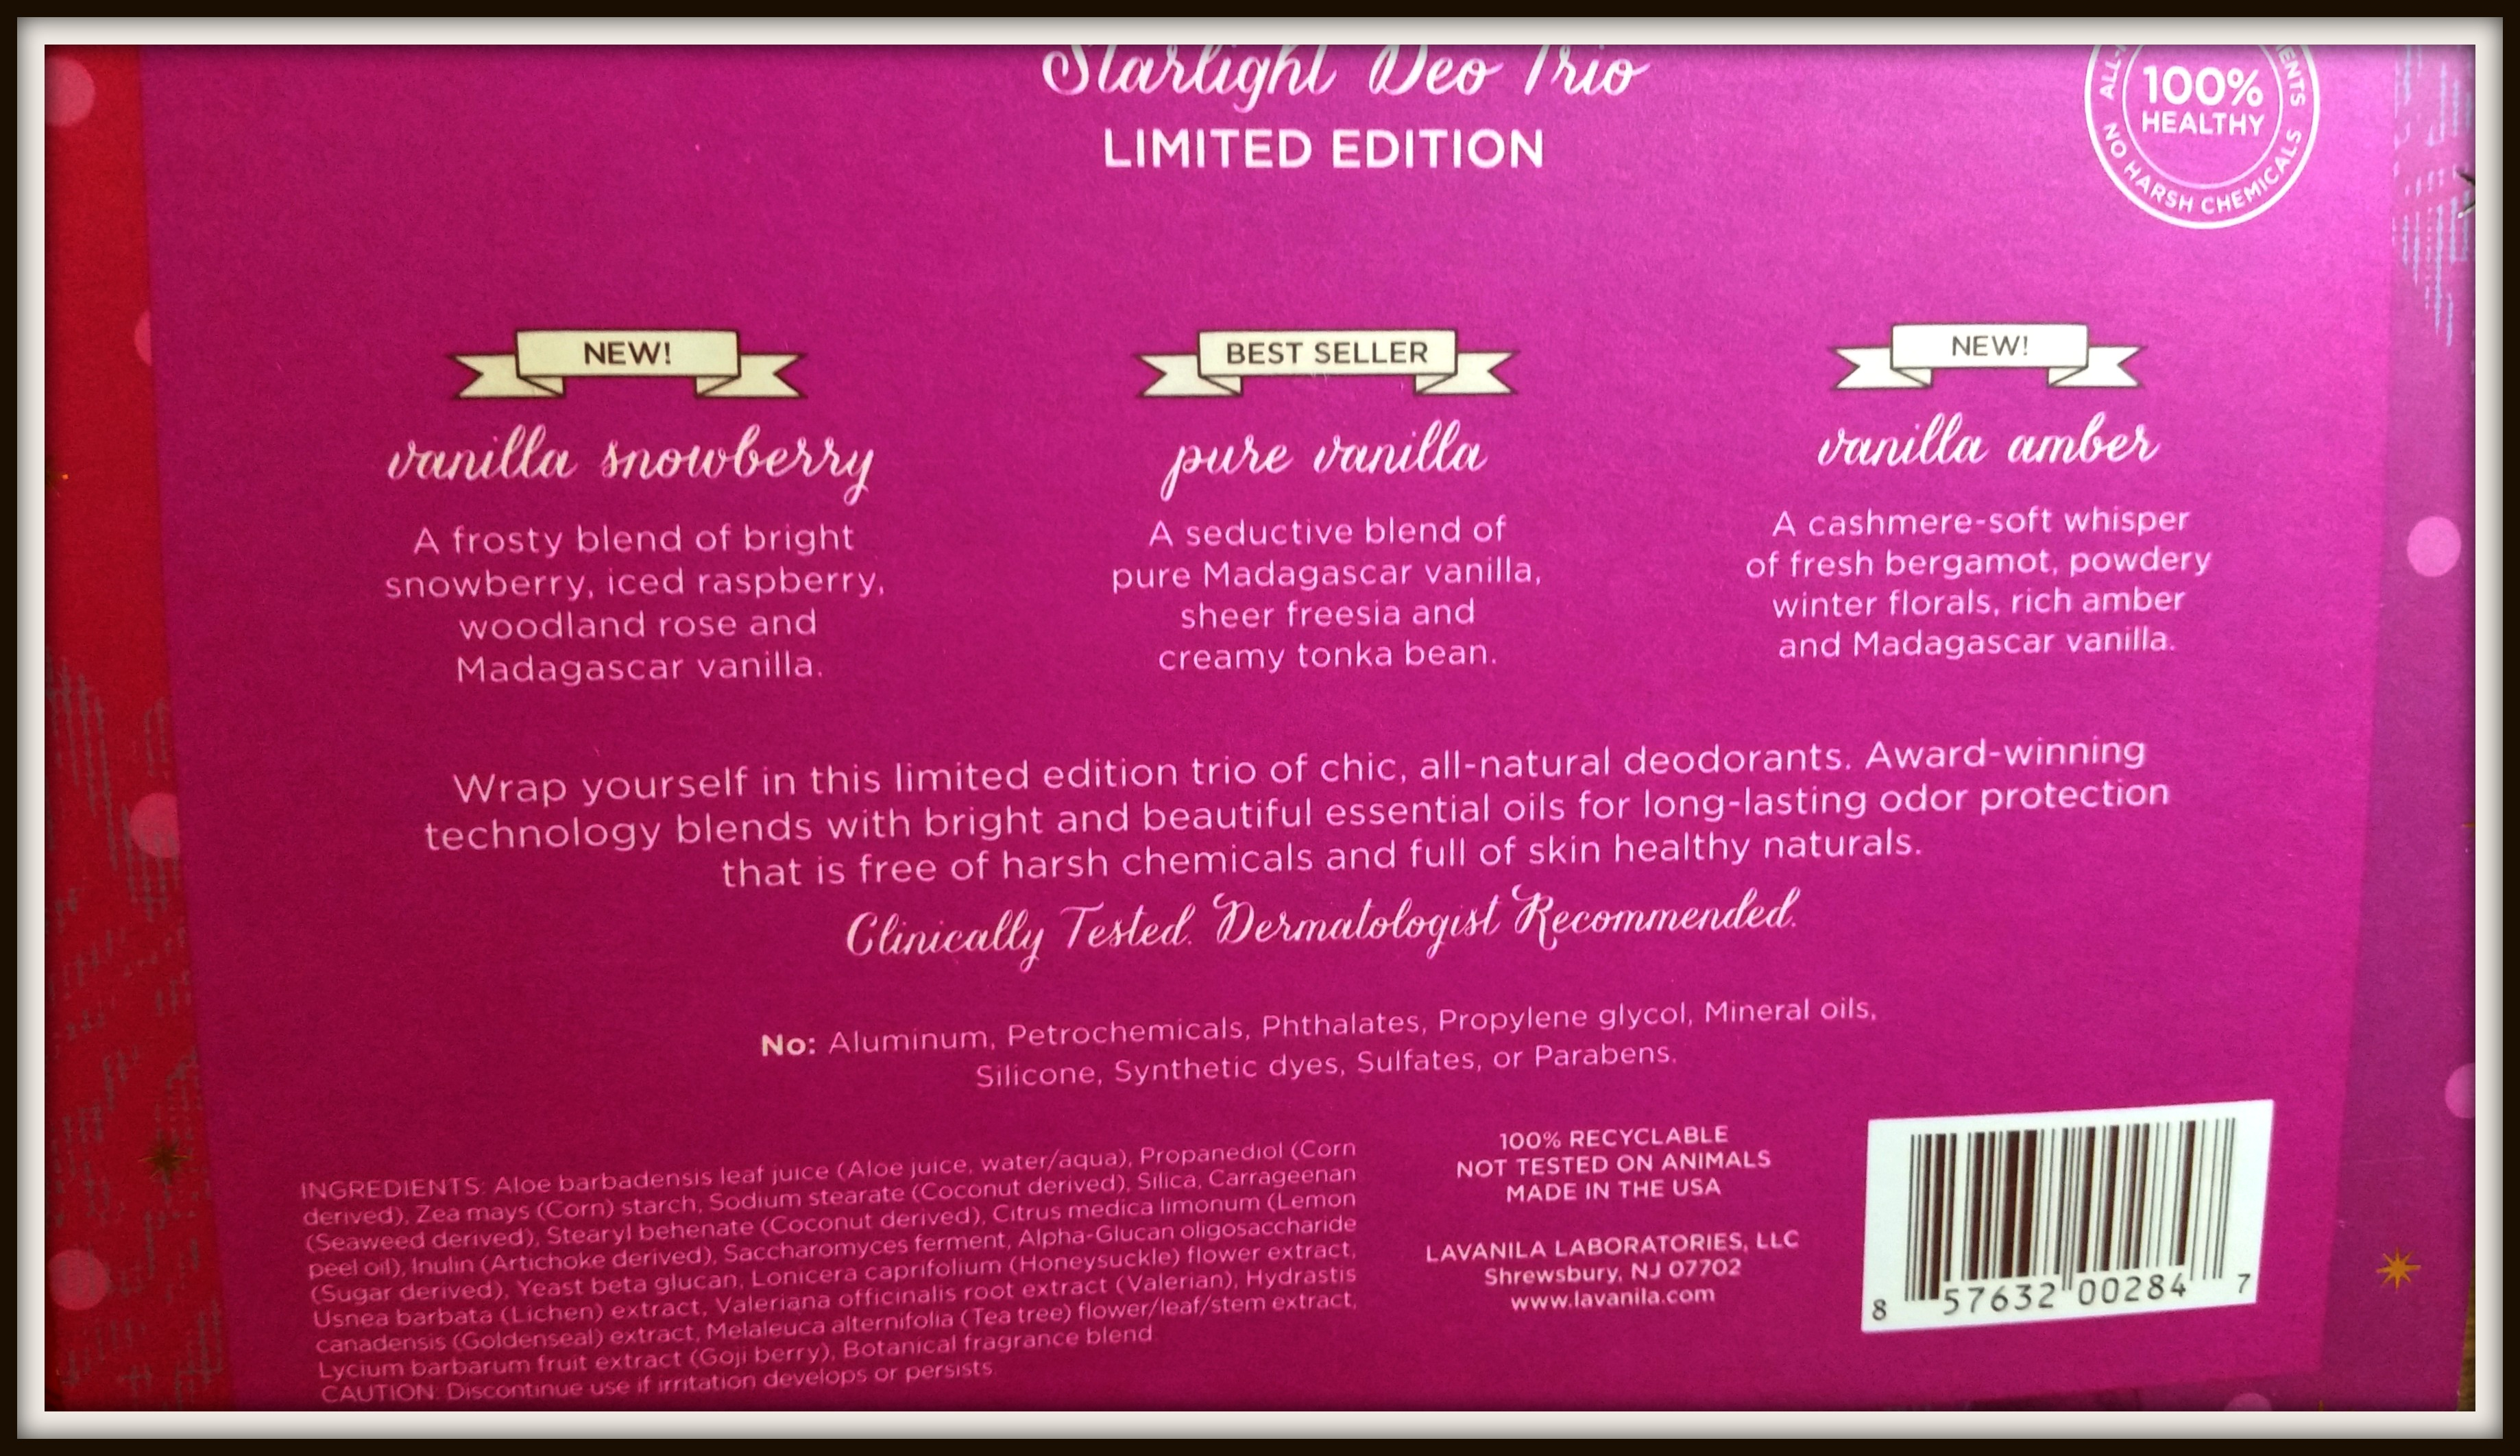 Lavanila Startlight Deo Trio Review (by WhippedGreenGirl.com)